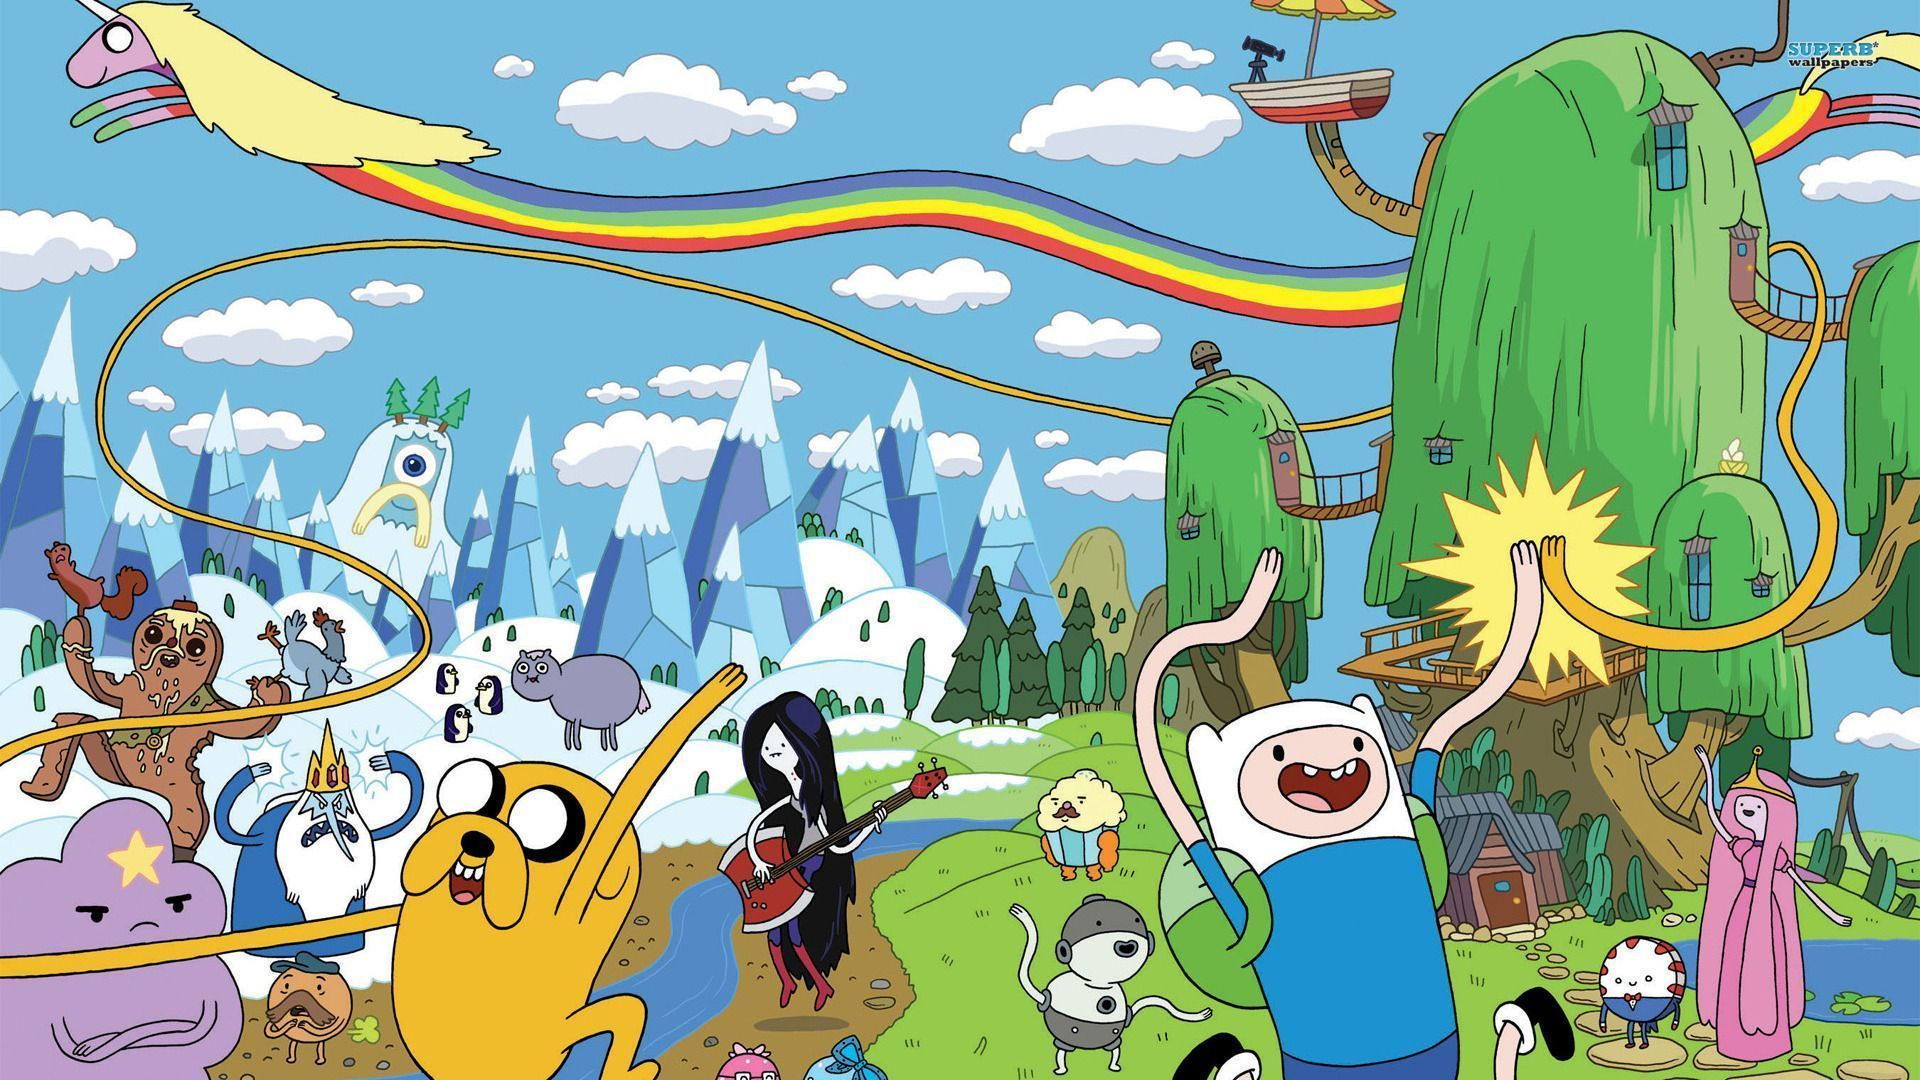 Adventure Time Landscape Wallpapers Top Free Adventure Time Landscape Backgrounds Wallpaperaccess